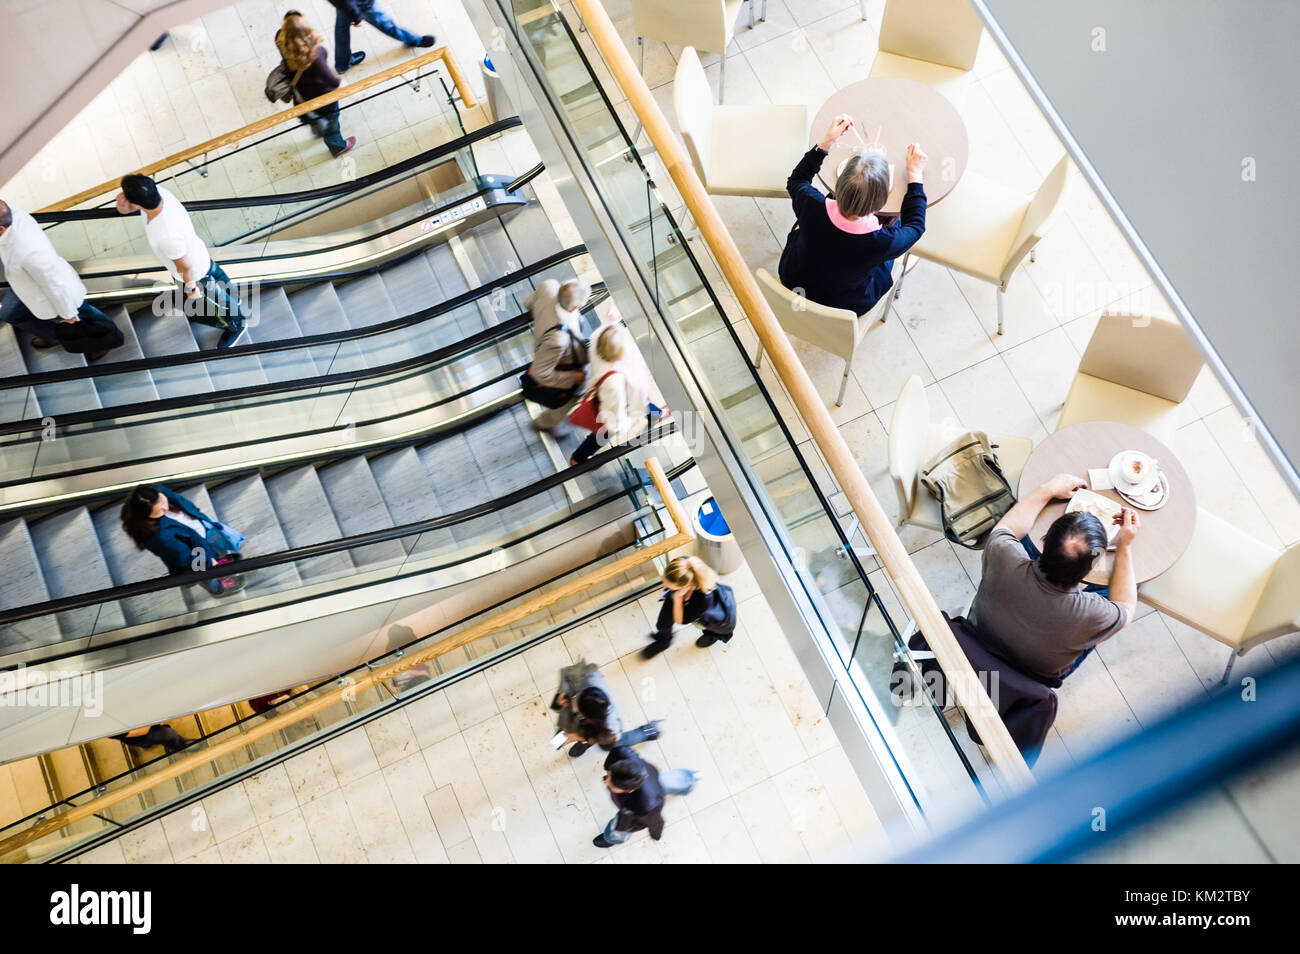 View from above of people in a shopping center taking the escalators, strolling along the walkways and having a snack on the patio of a cafe. Stock Photo